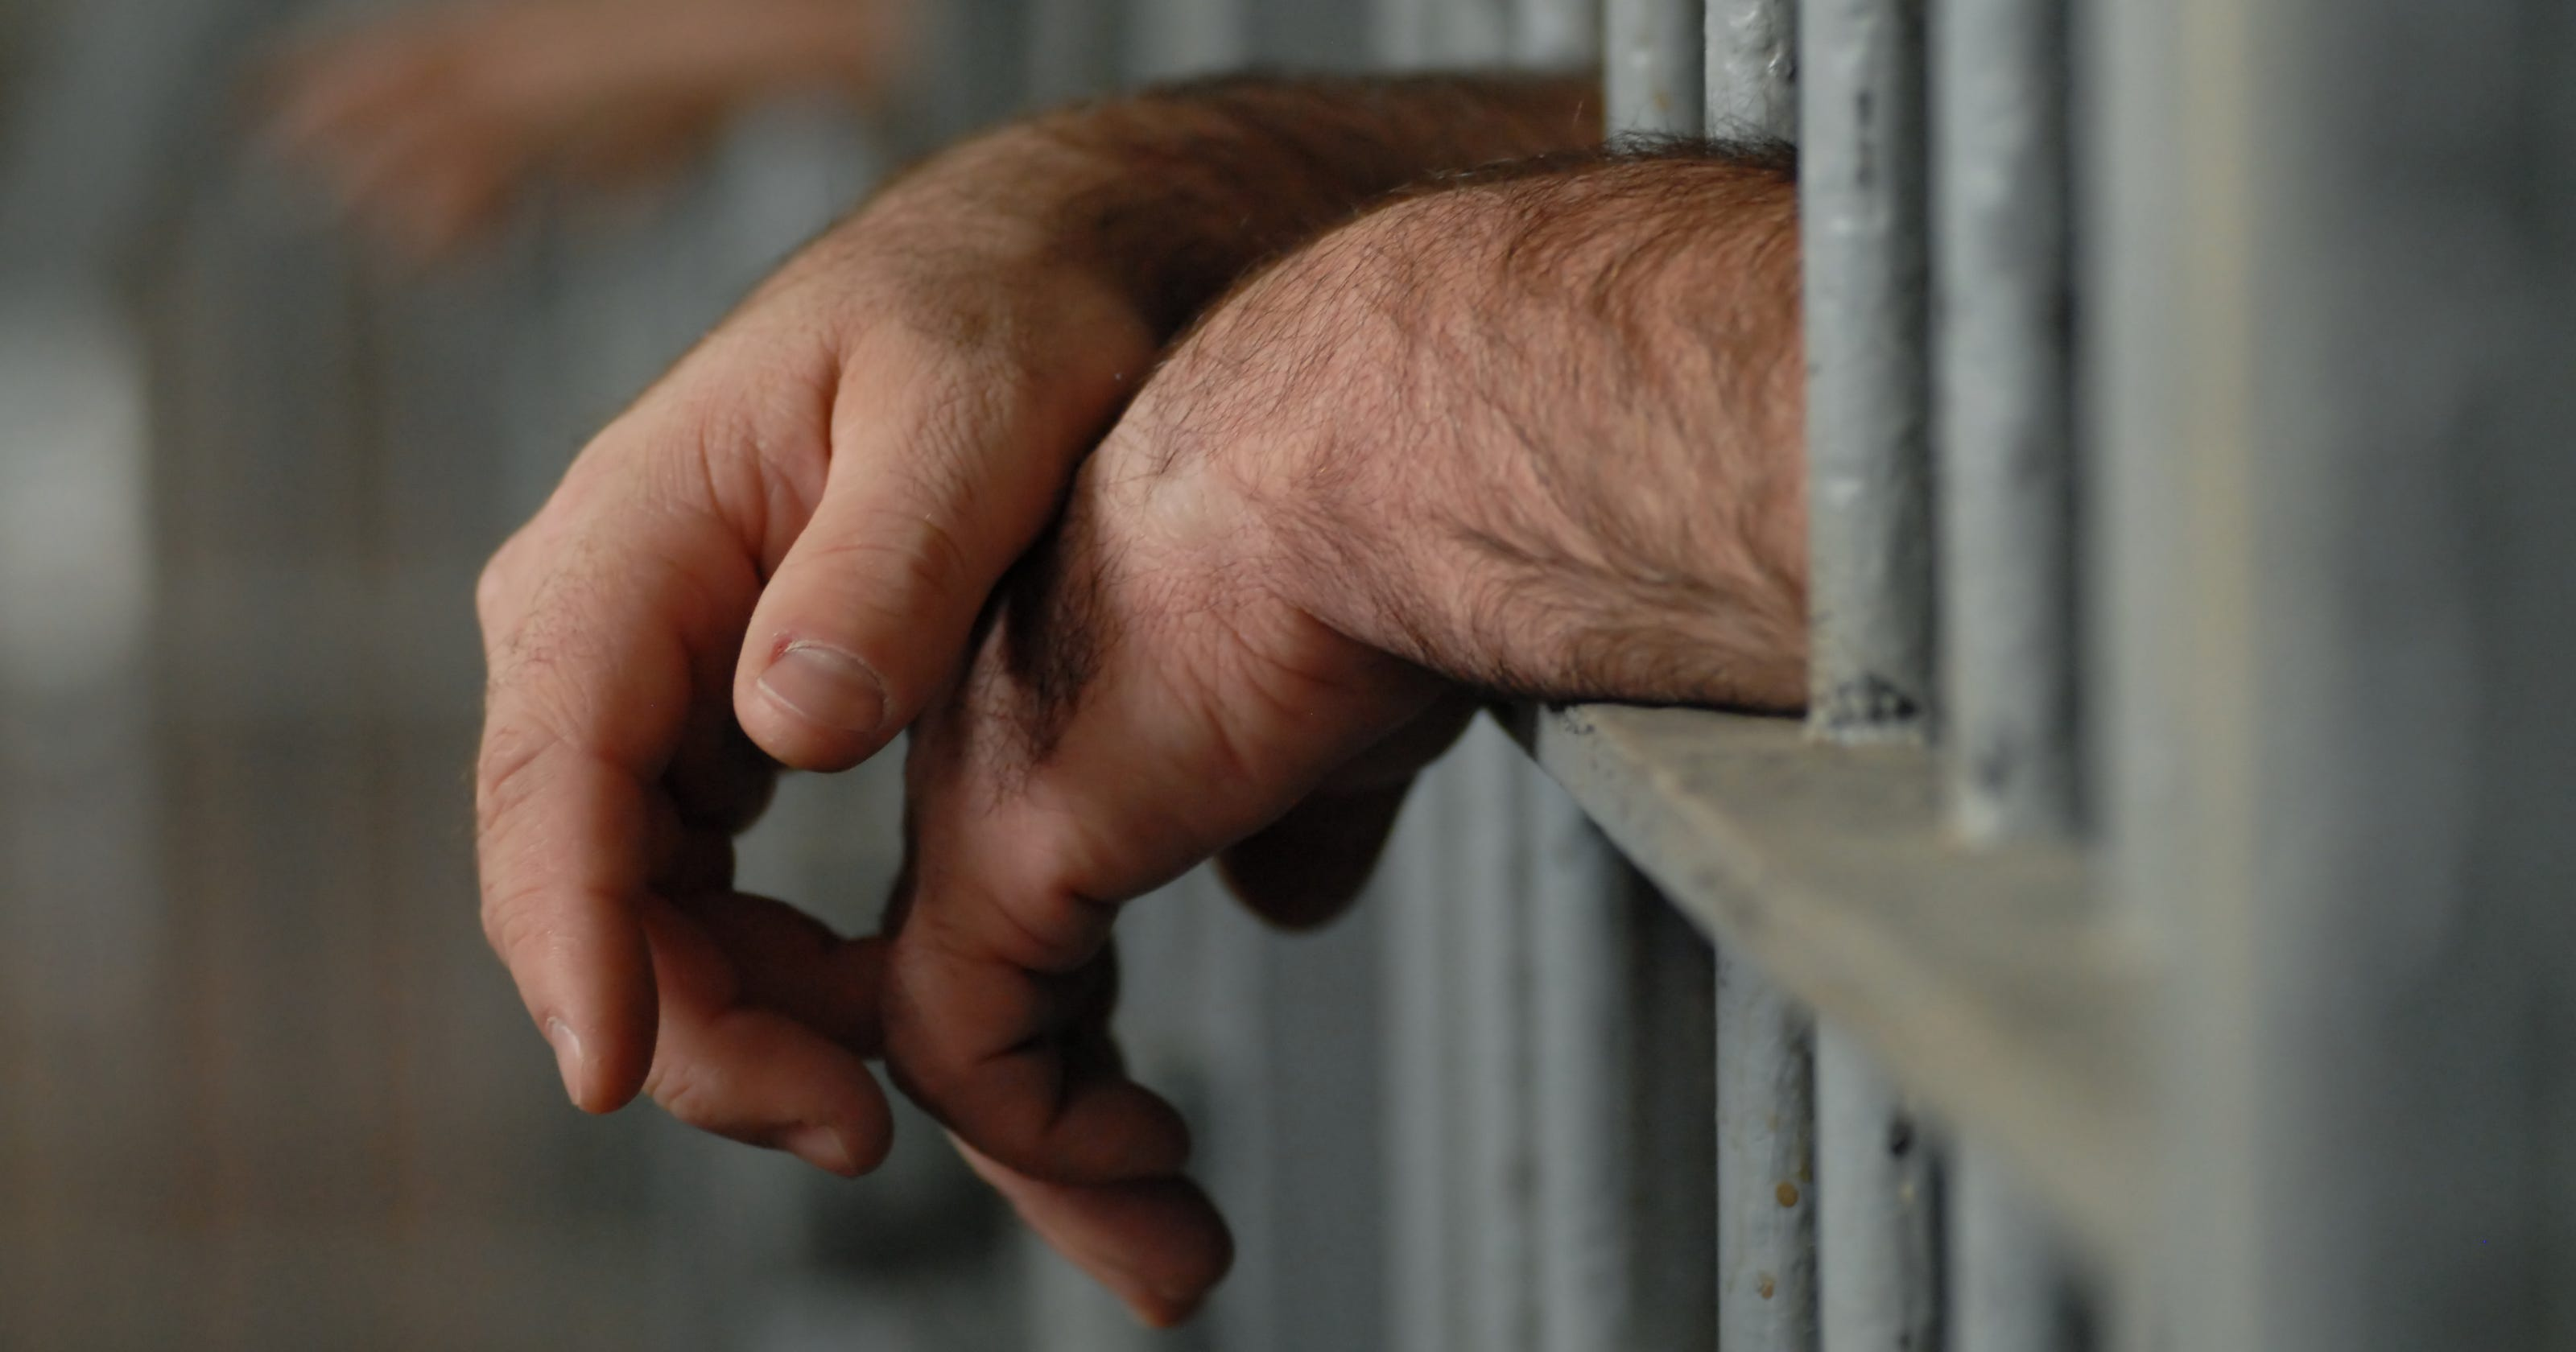 Louisville's overflow jail closed for now after state takes